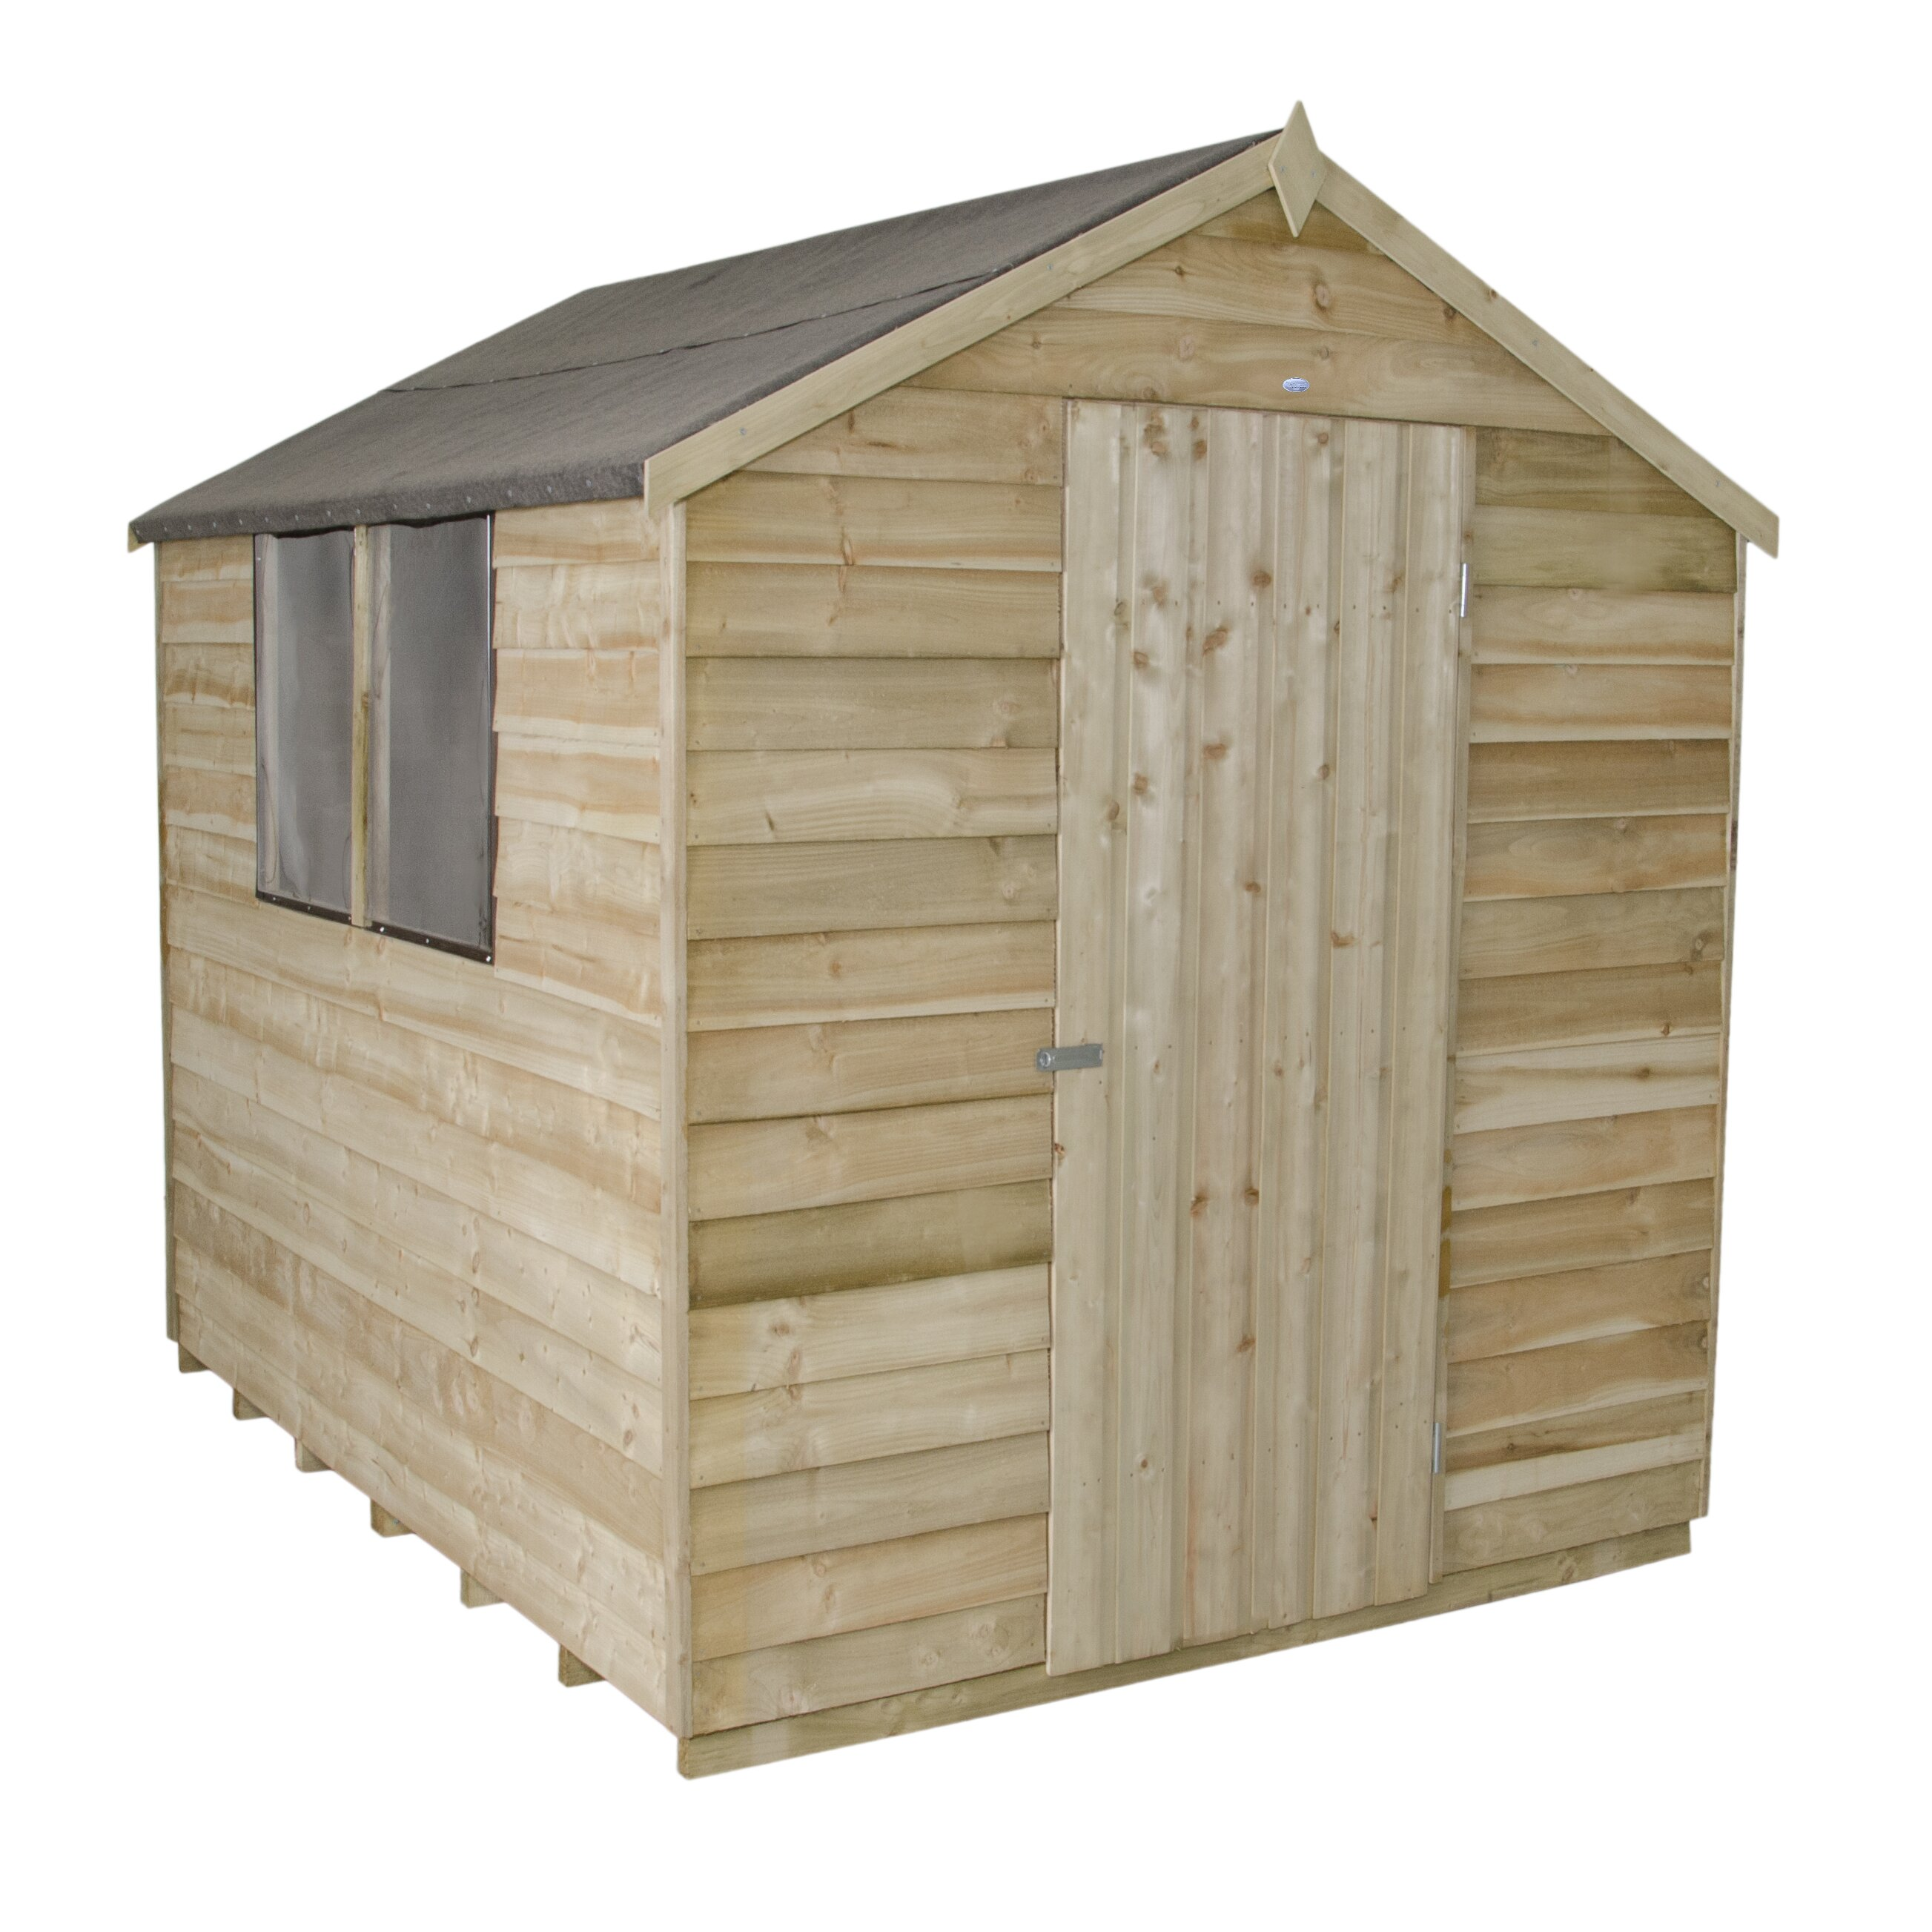 Forest garden 6 x 8 wooden storage shed wayfair uk for Wood storage shed